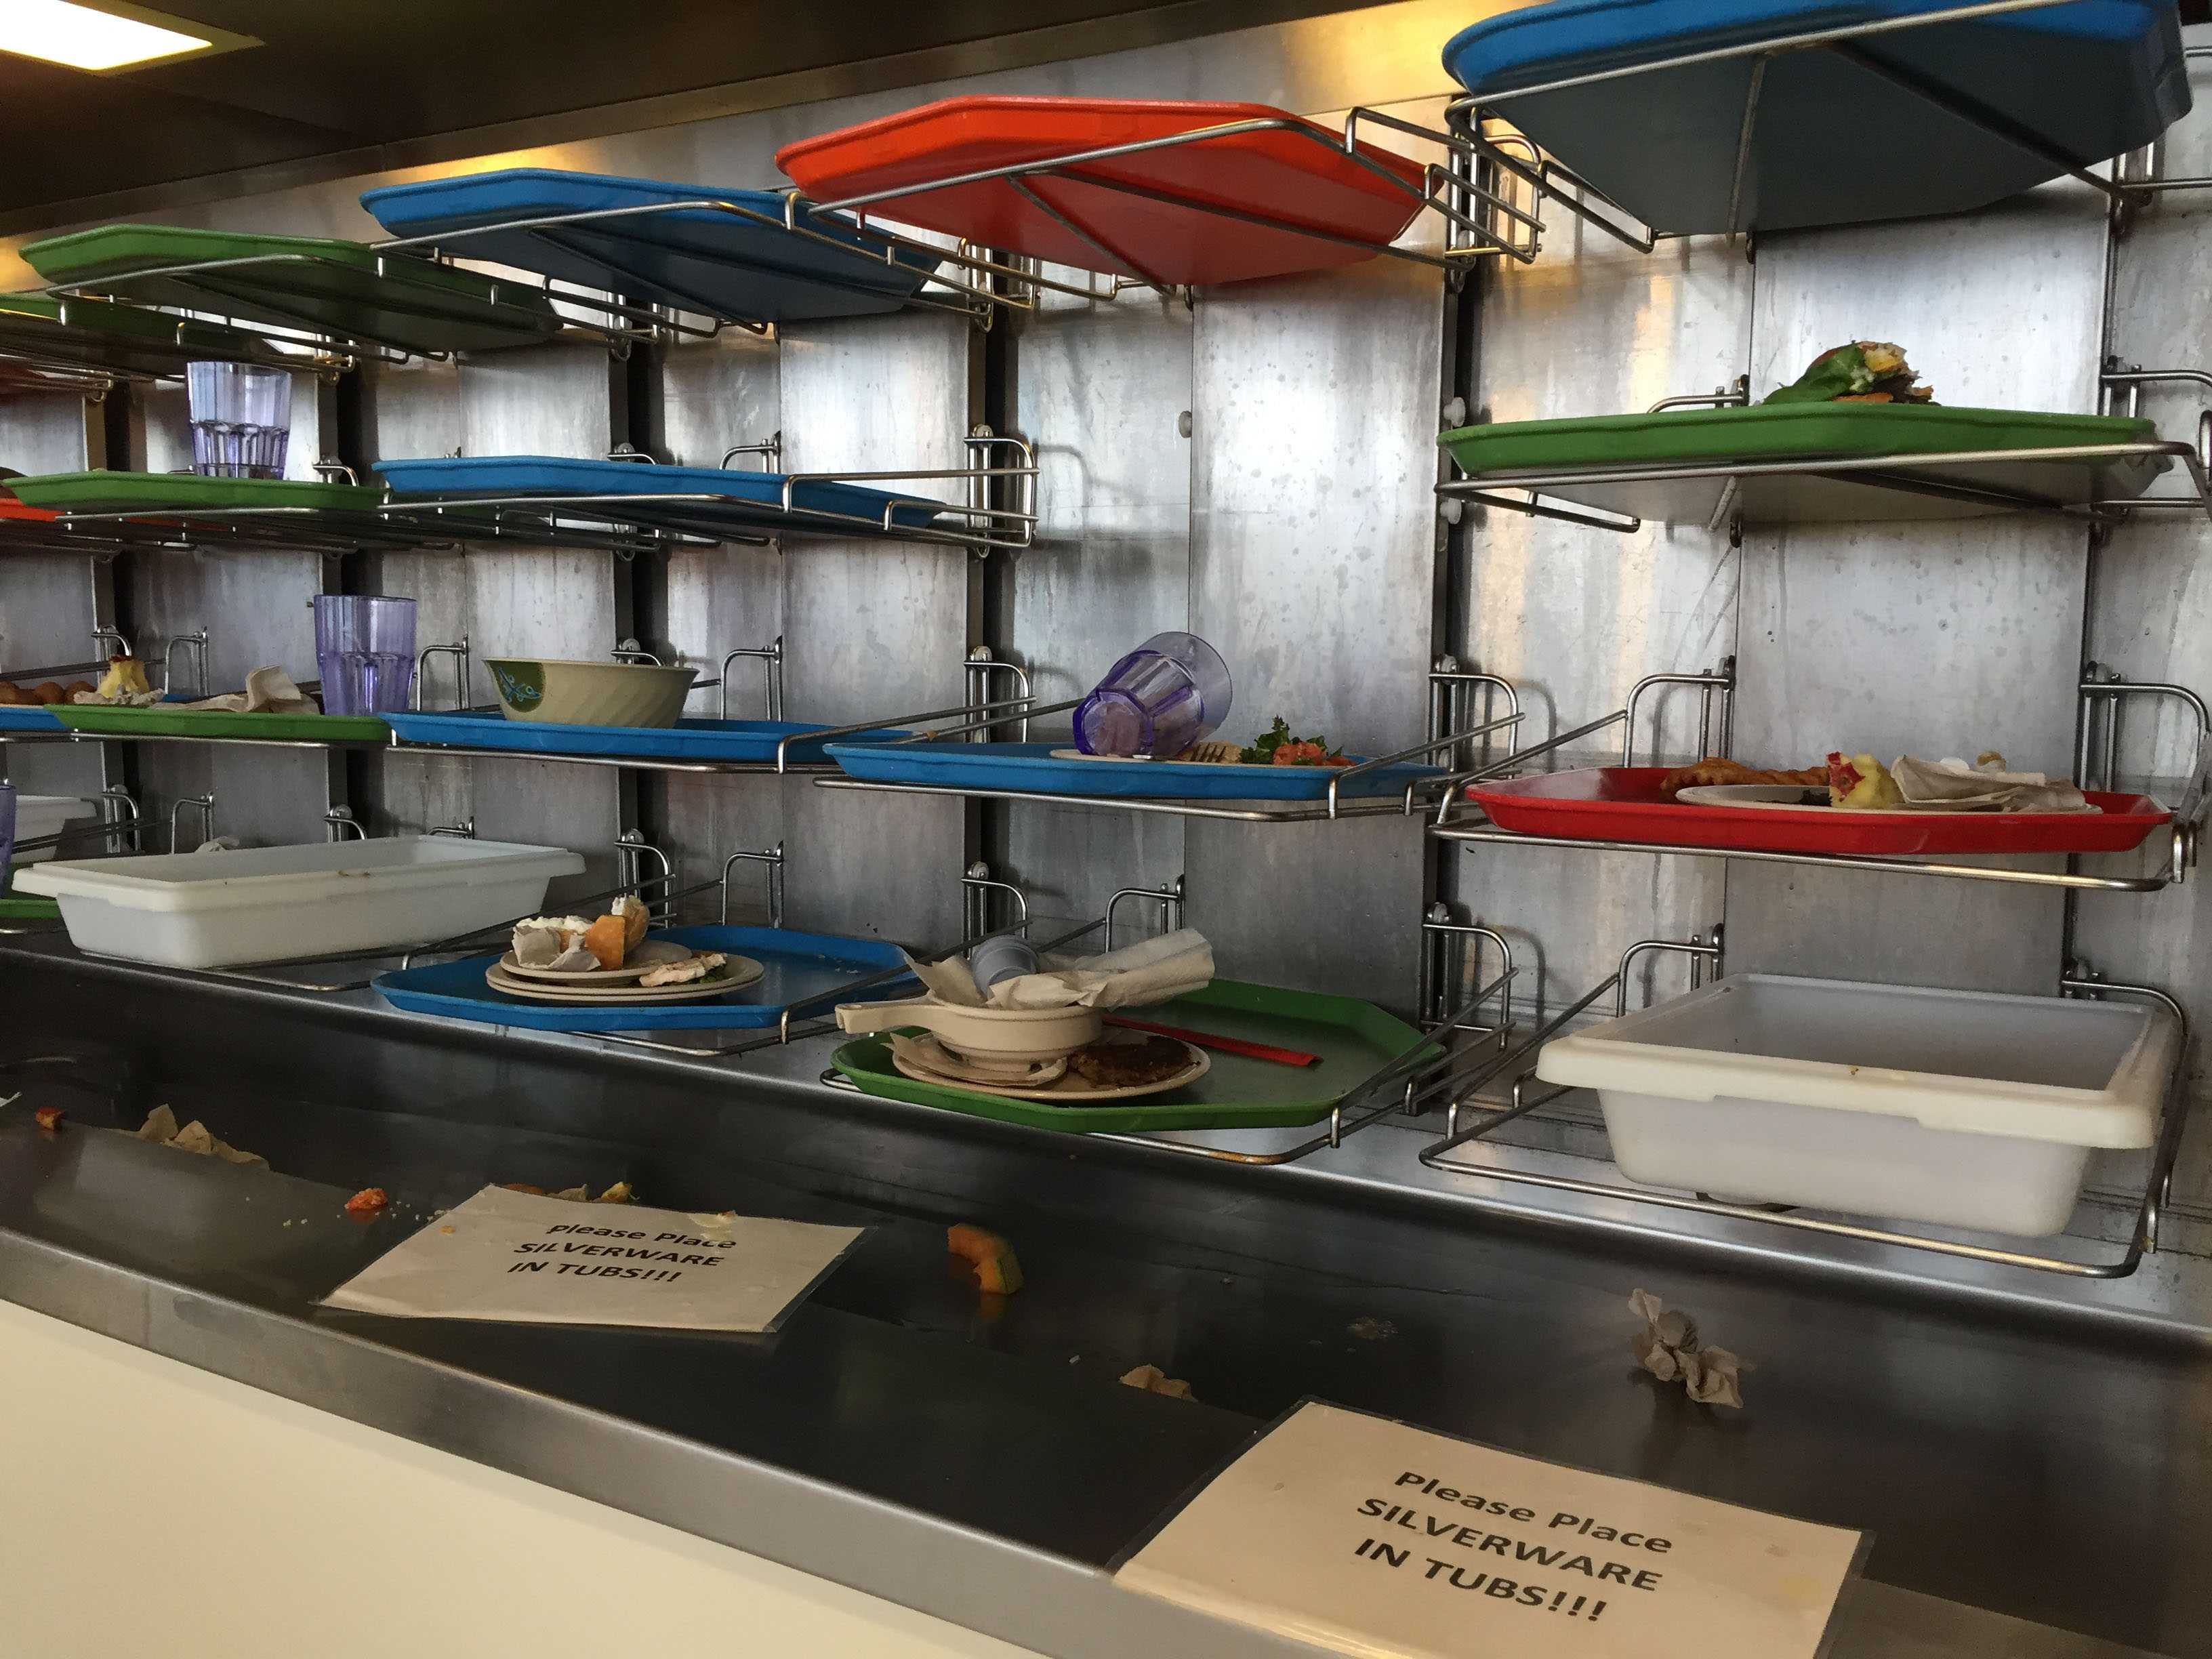 Students put their food waste, along with their plates and utensils, on a moving tray conveyor belt in the Ikenberry Dinning Hall.